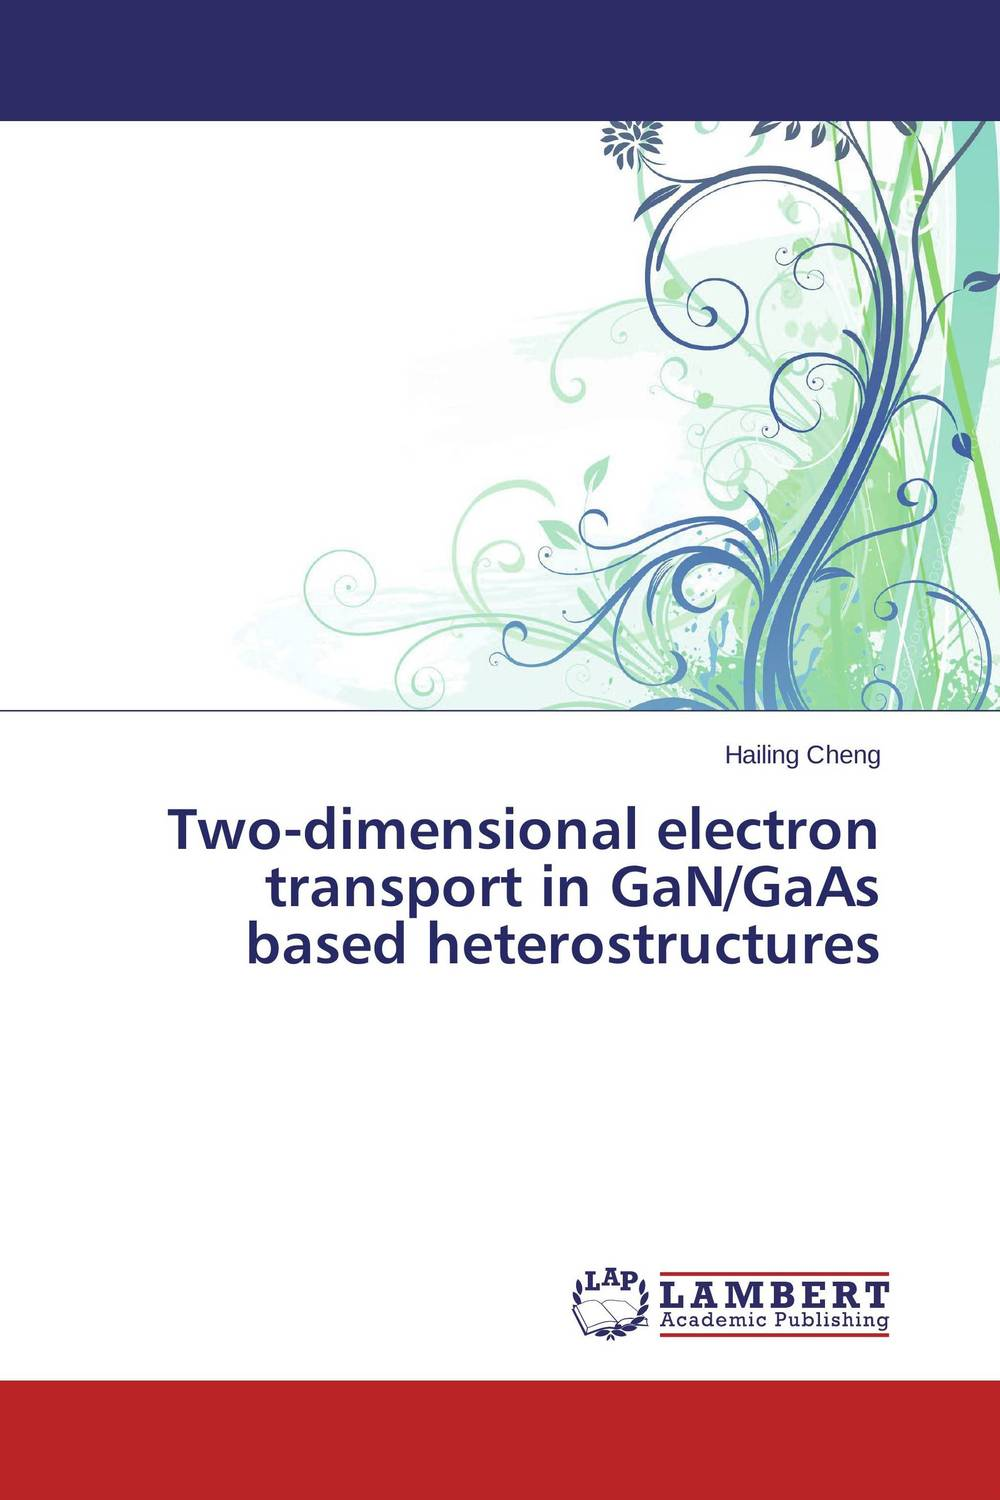 Two-dimensional electron transport in GaN/GaAs based heterostructures electron ionization relevance to planetary atmospheres